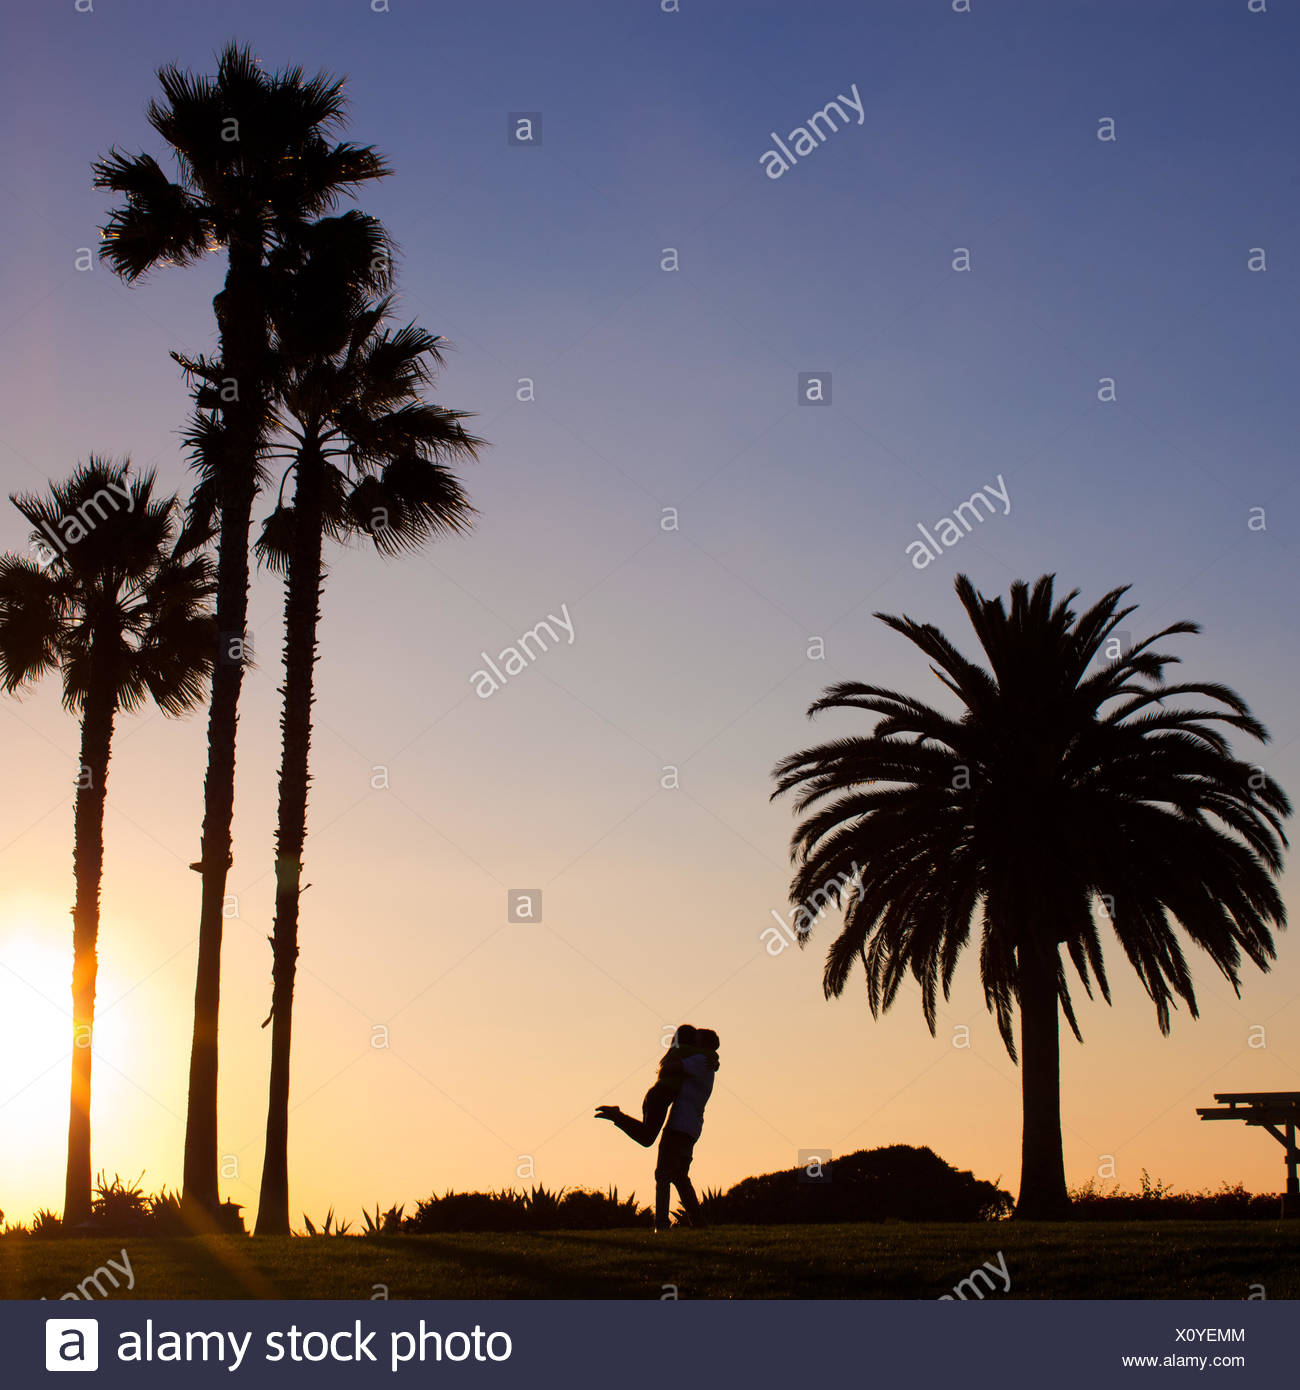 Silhouette of a man lifting his girlfriend - Stock Image